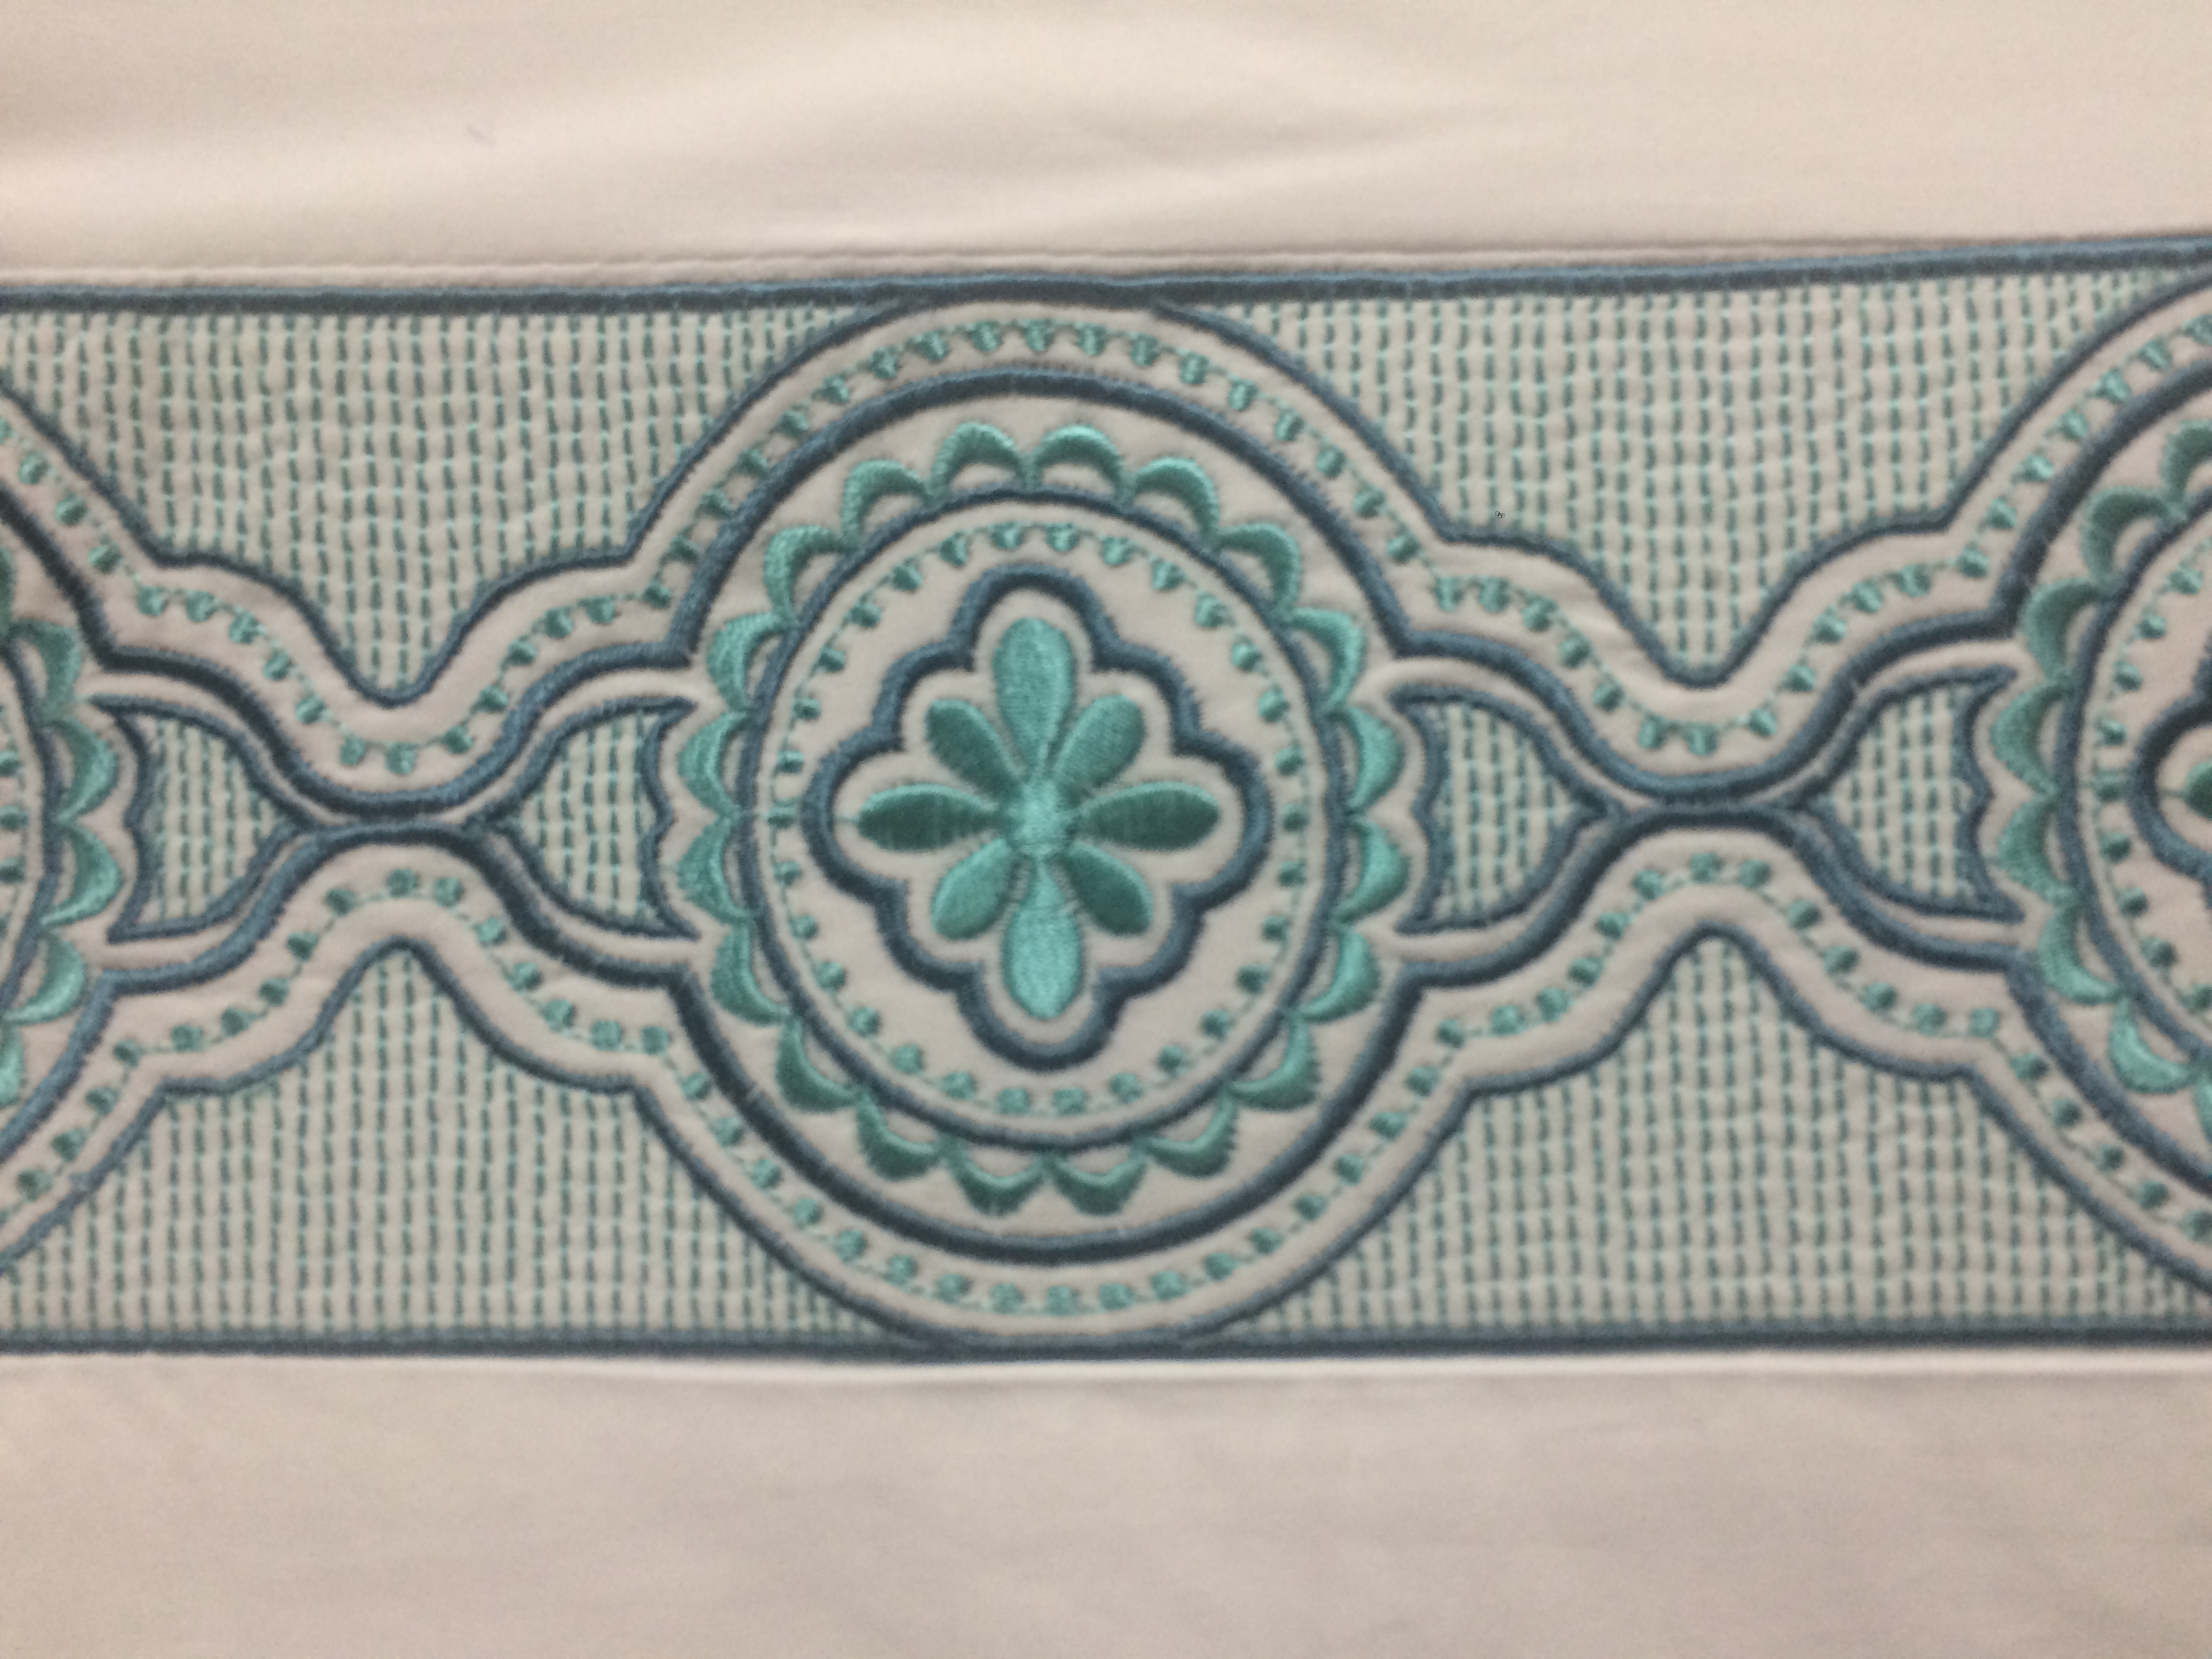 Sky Embroidered Frame Turquoise Detail